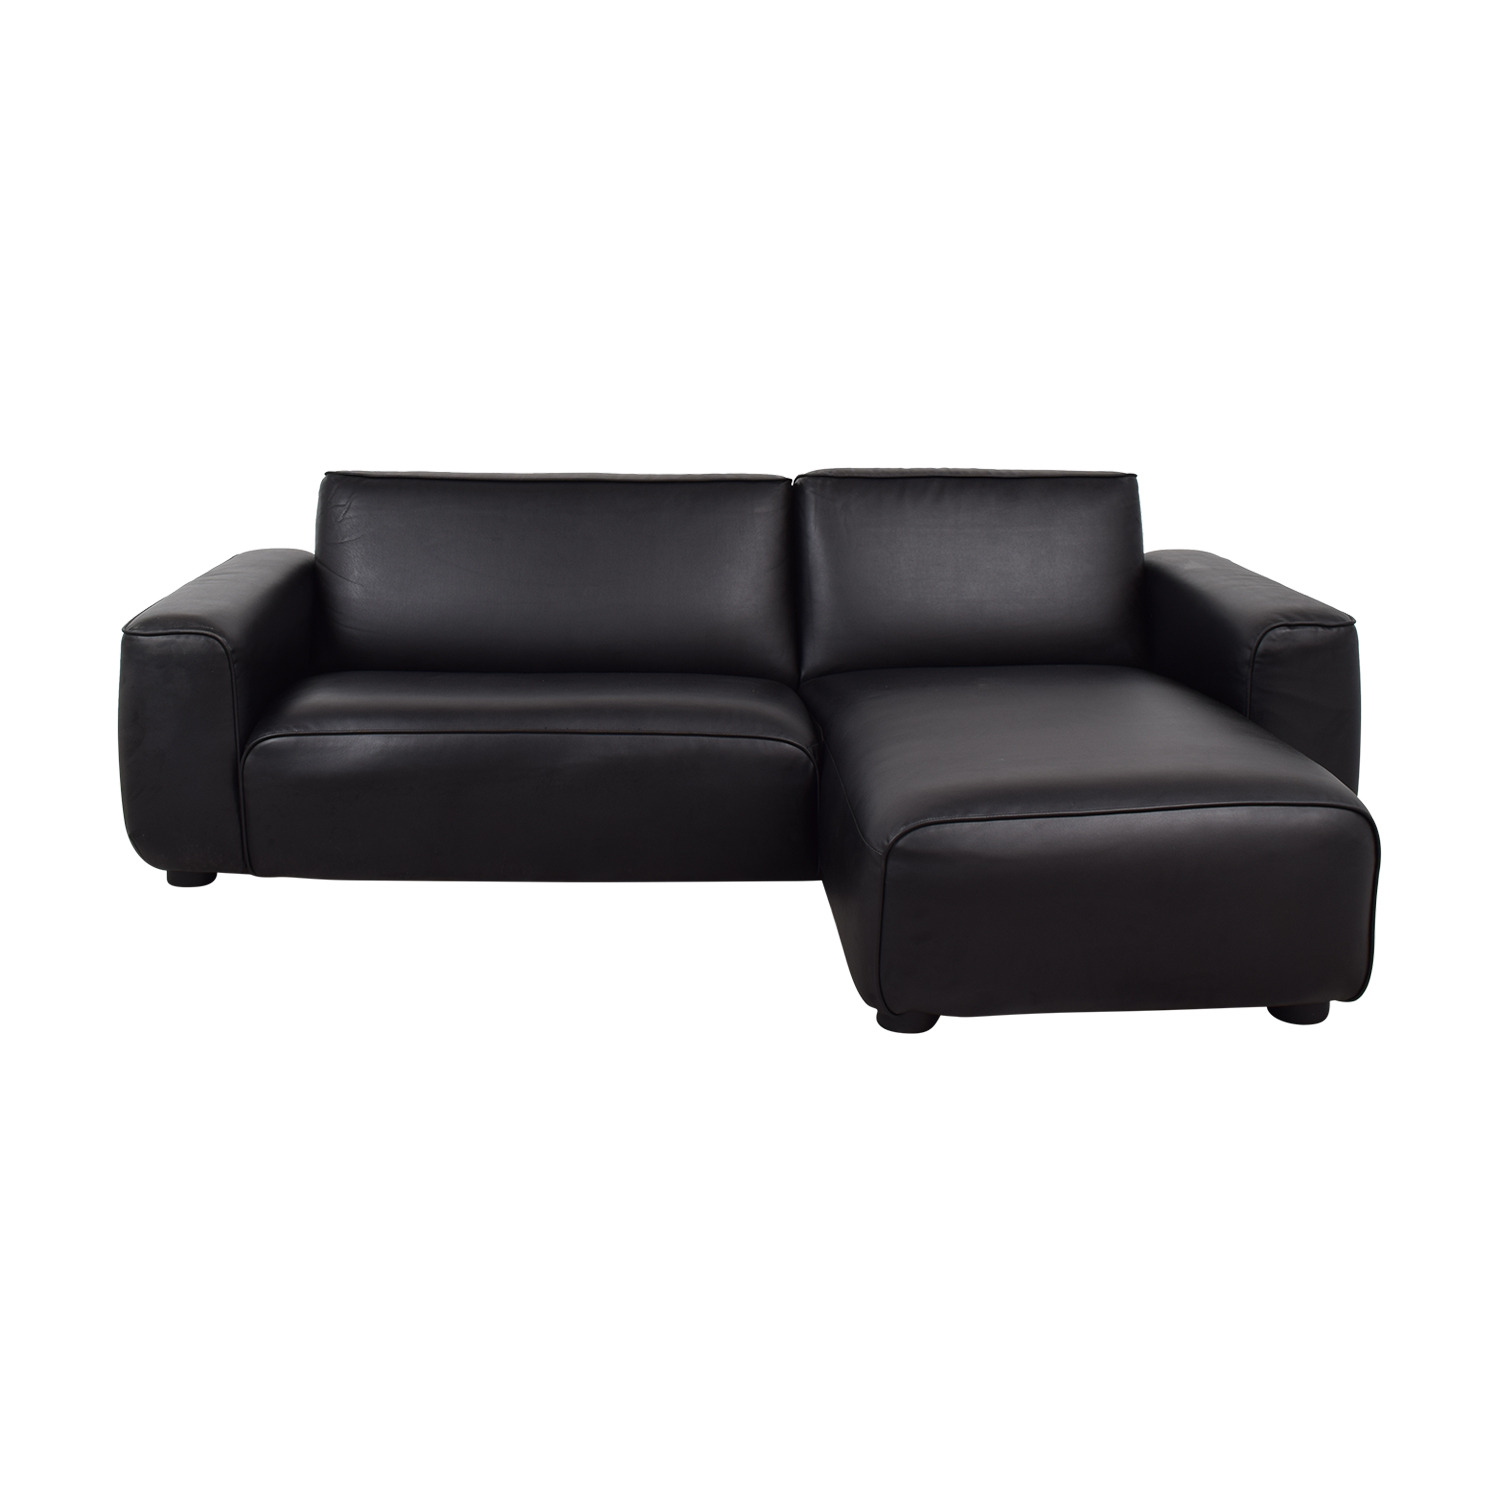 81% OFF - IKEA IKEA Dagarn Loveseat And Chaise / Sofas